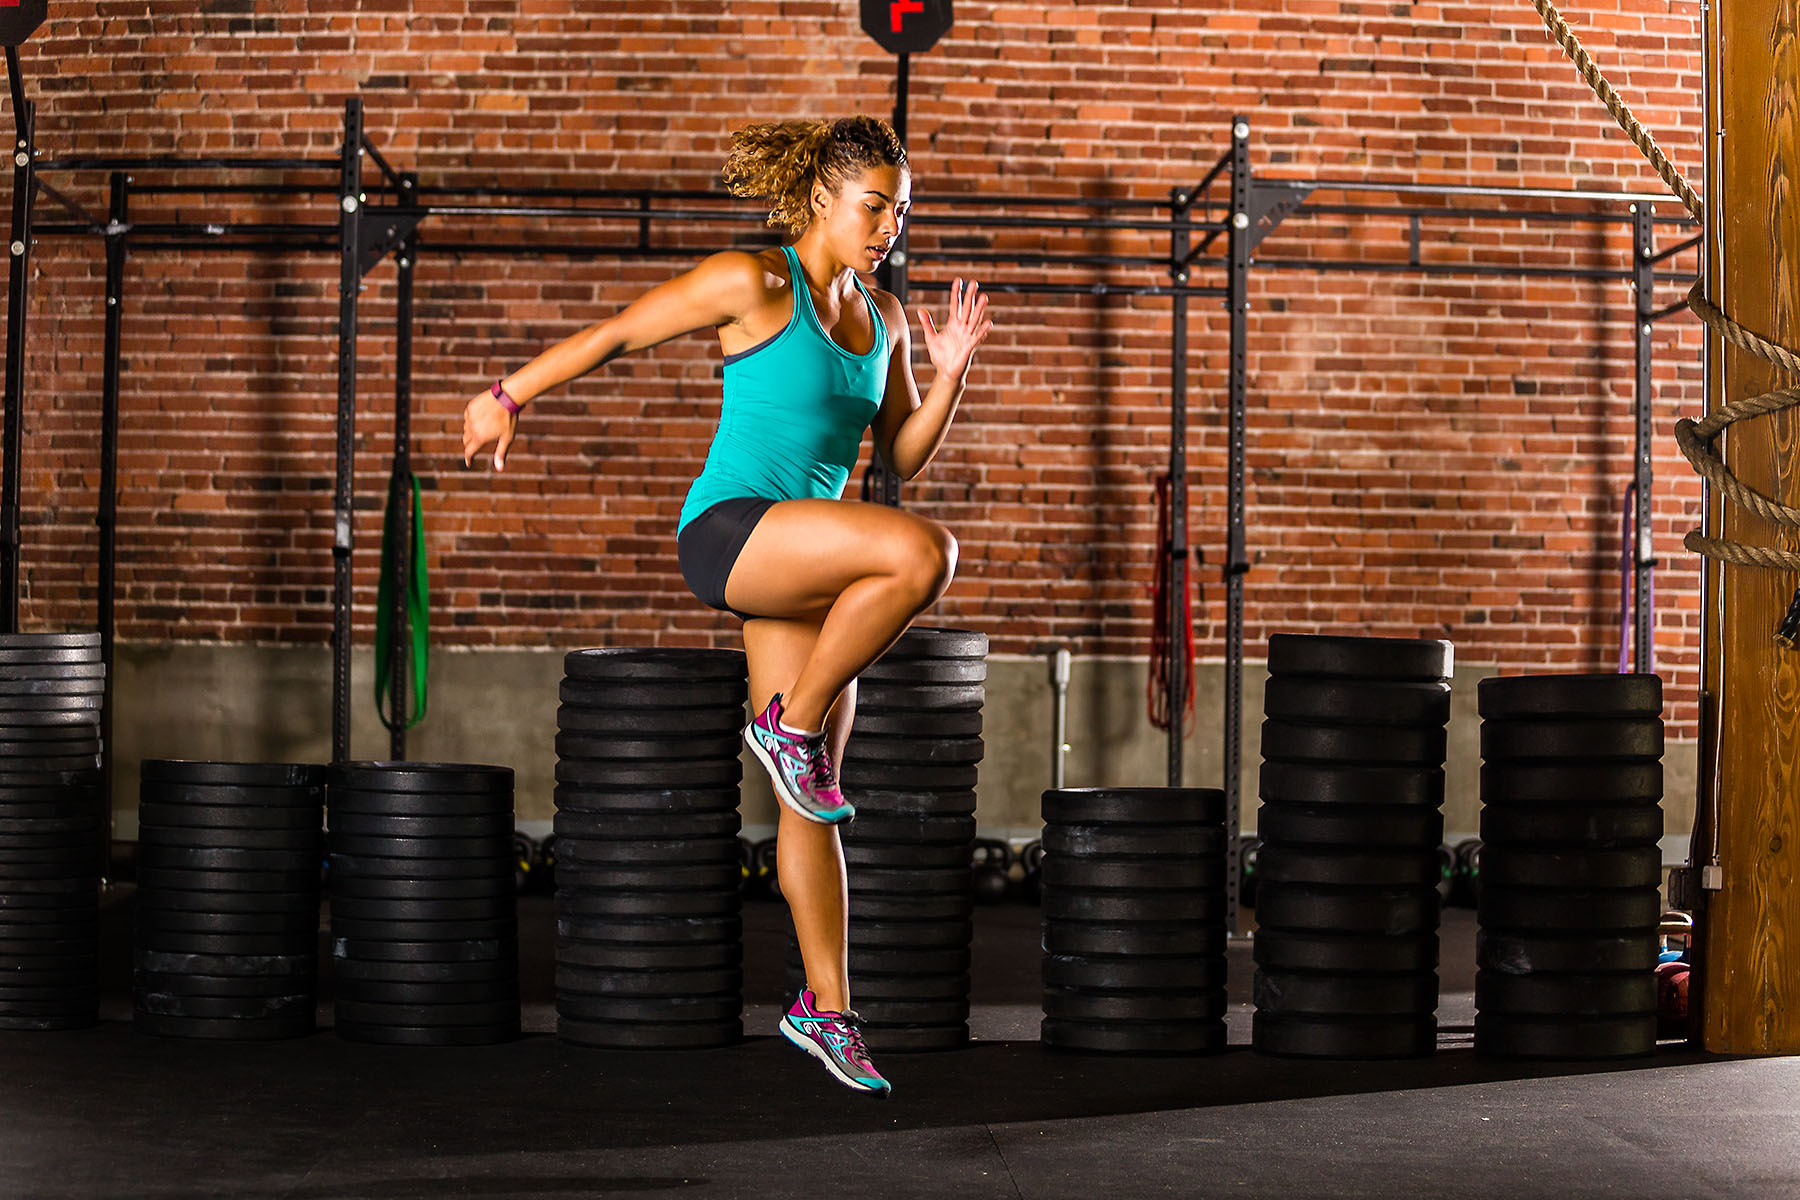 Fitness: Jennifer Forrester exercising at brick walled crossfit gym, Seattle